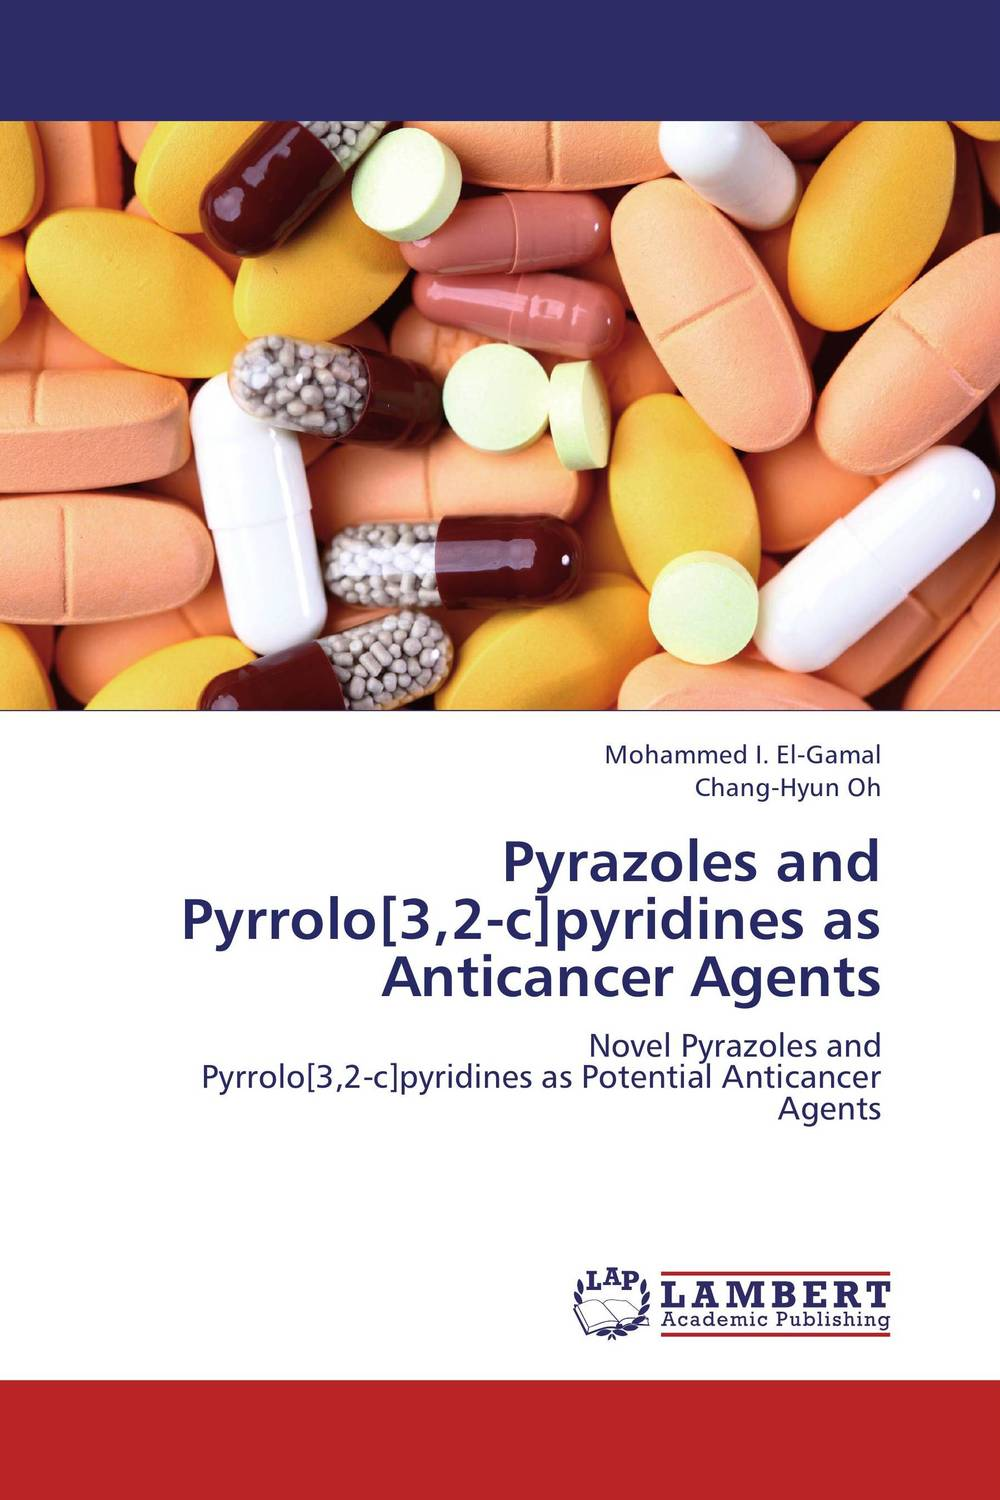 Pyrazoles and Pyrrolo[3,2-c]pyridines as Anticancer Agents against colorectal cancer